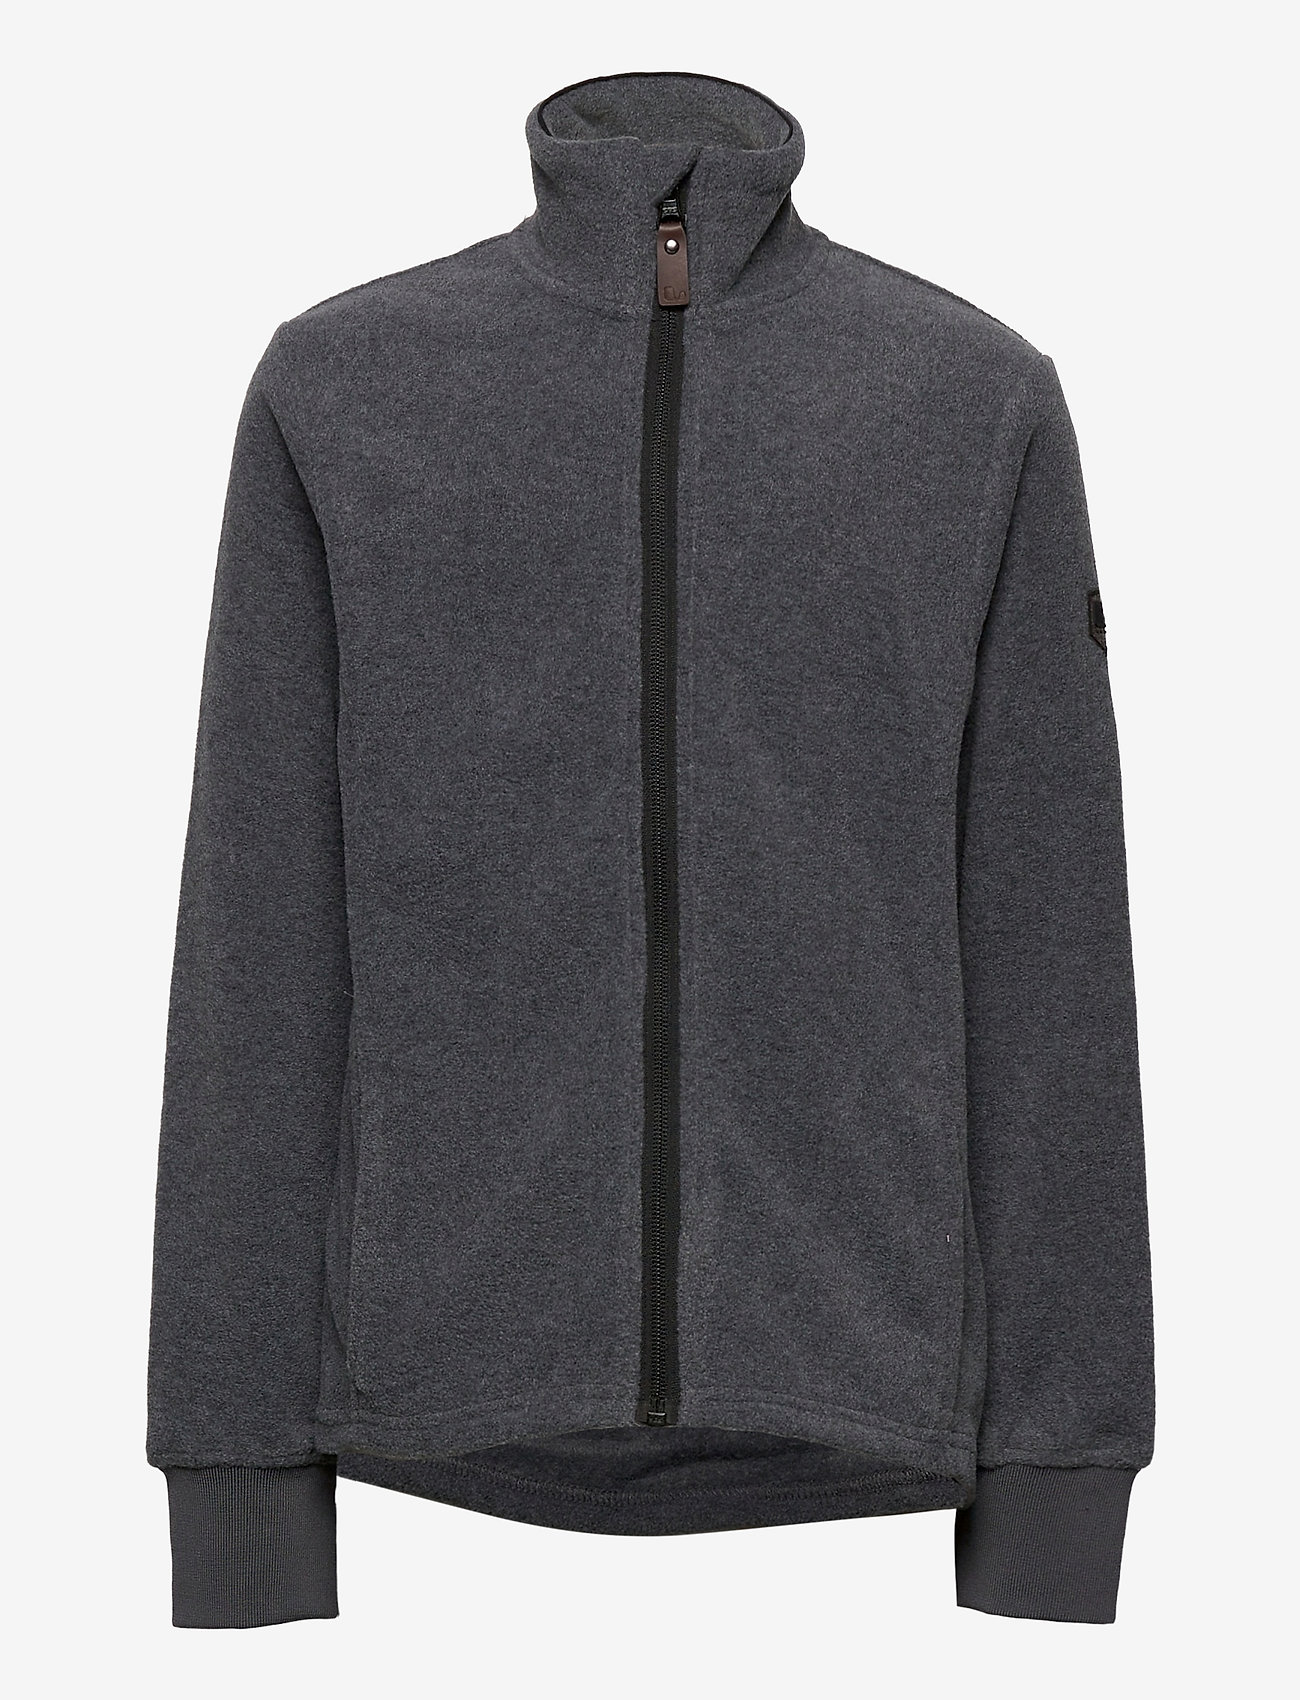 Lindberg Sweden - SÄVAR FLEECE JACKET - fleecetøj - greymelange - 0